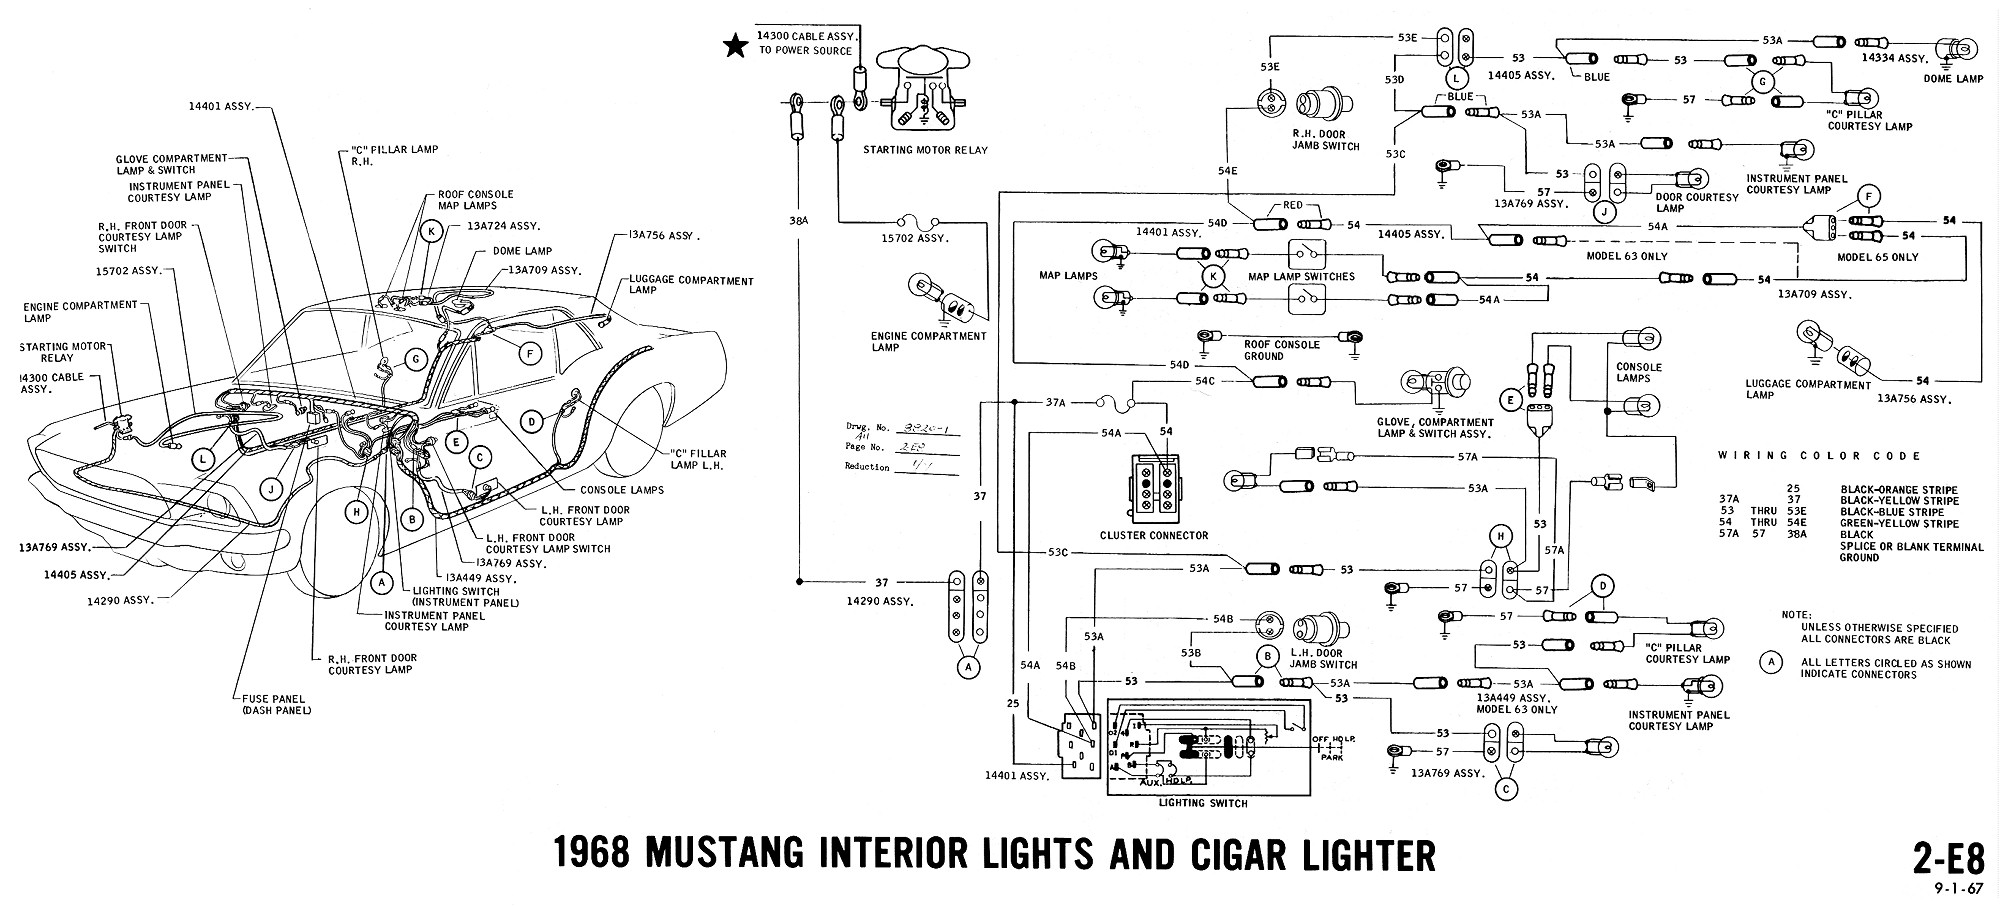 Lighting Control Schematic